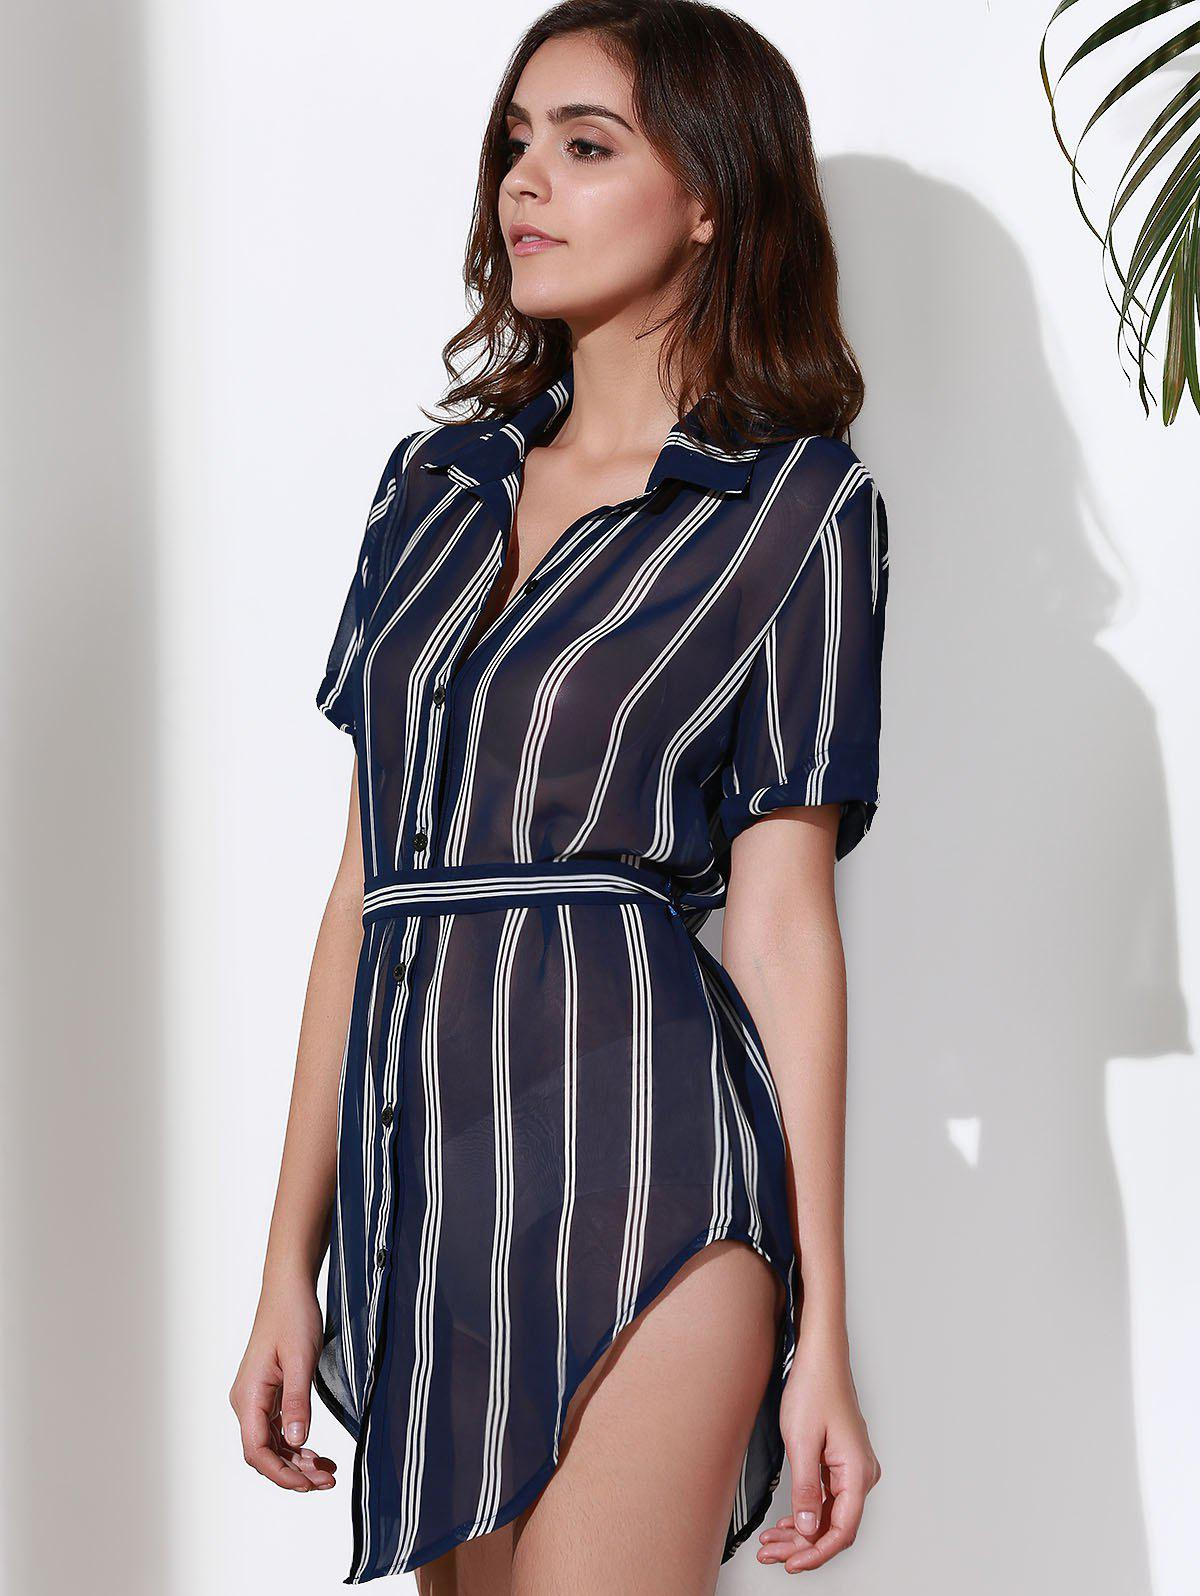 Stylish Turn-Down Collar Short Sleeve Striped Women's Shirt Dress - PURPLISH BLUE L